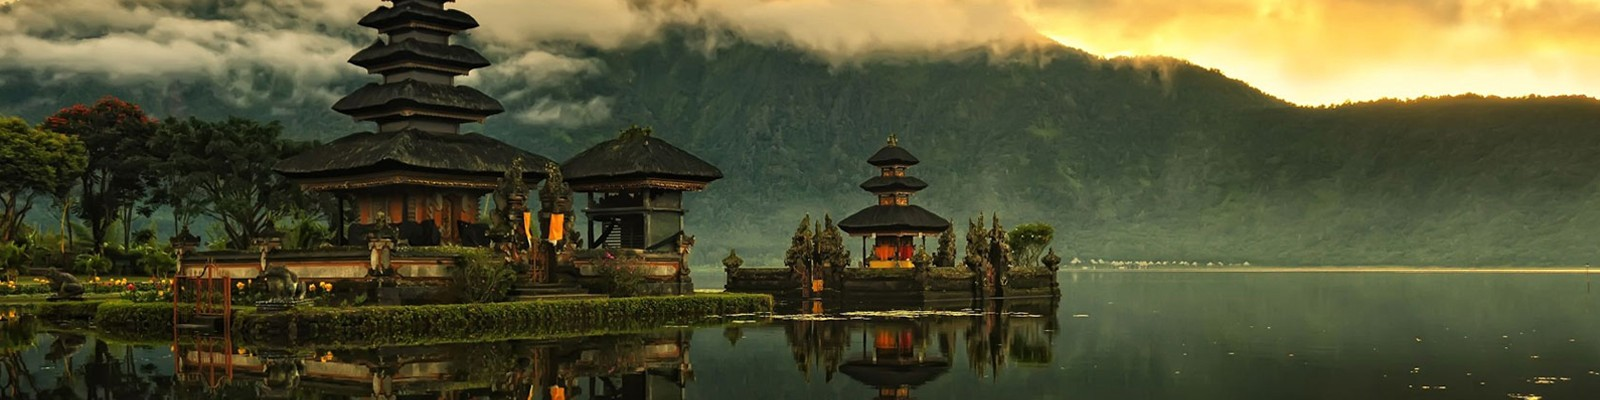 Bali Honeymoon Packages - Header